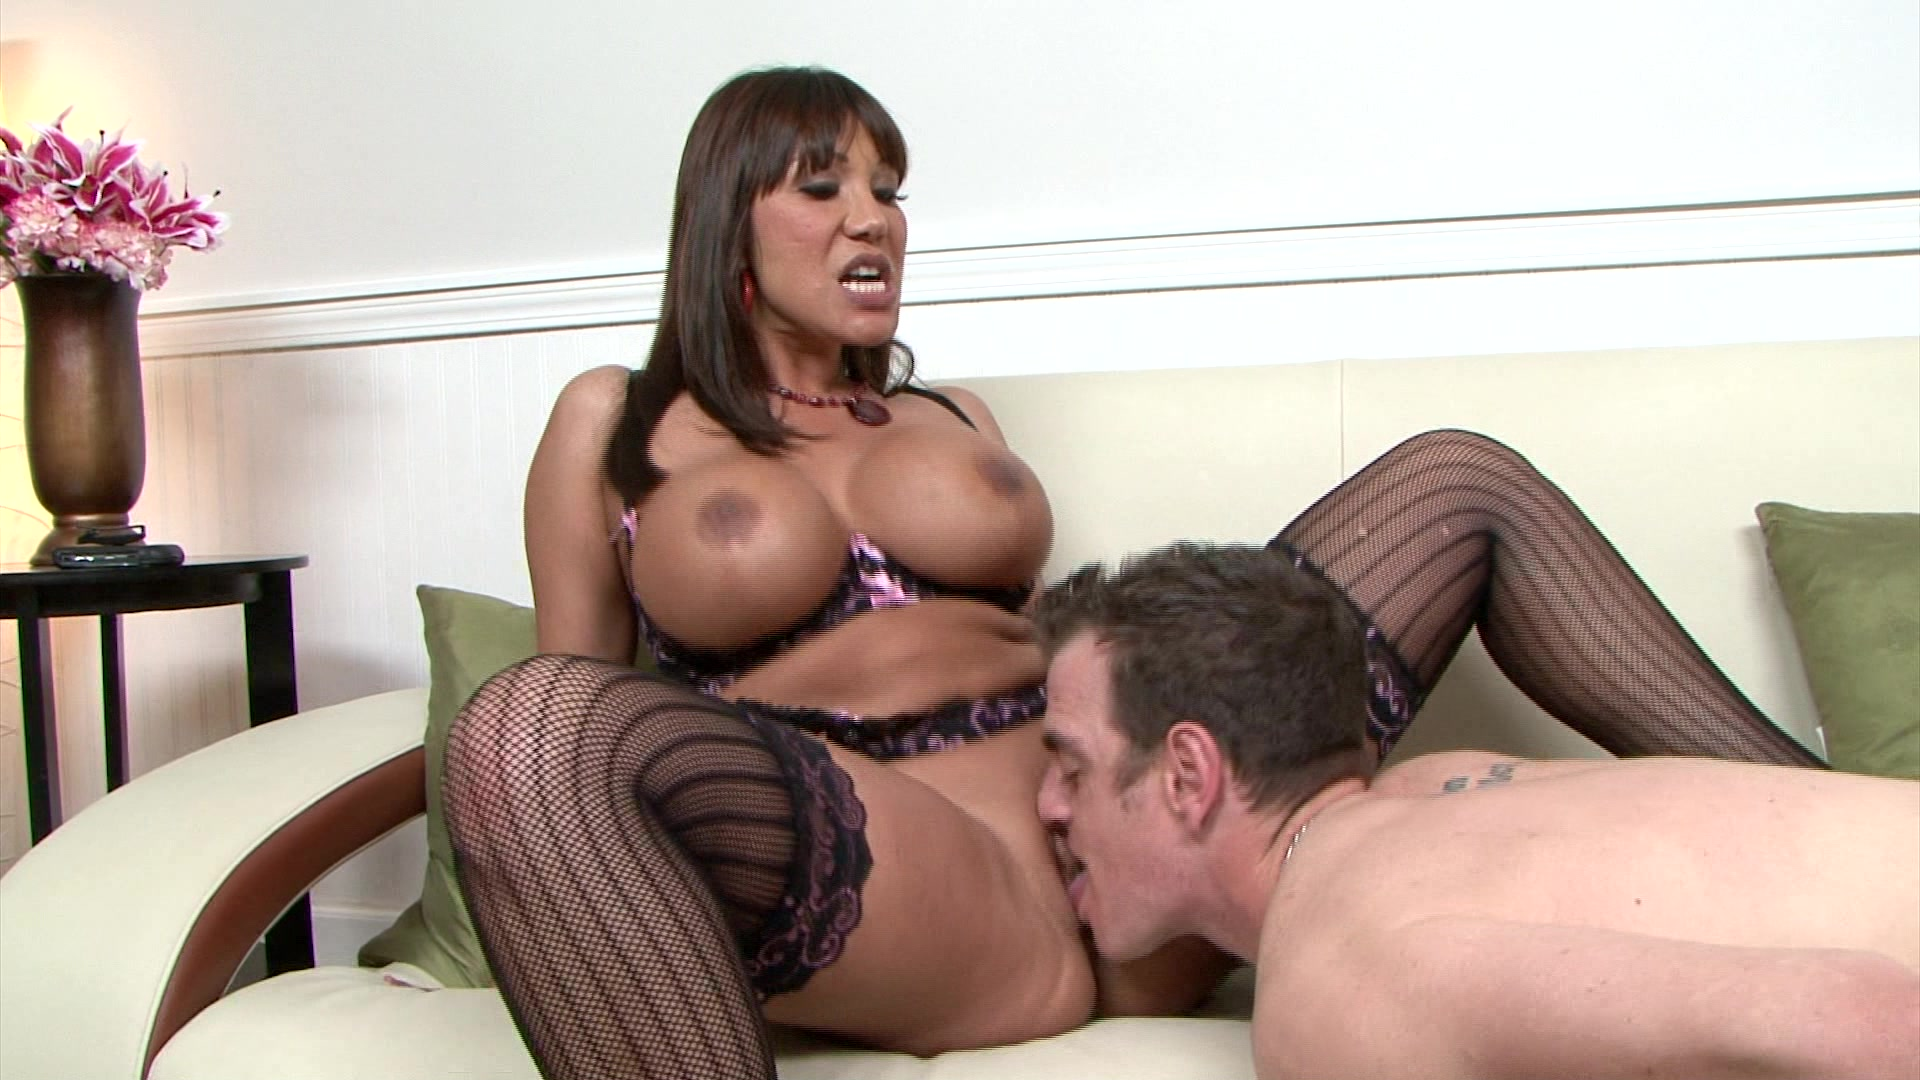 Big Tits Boss Madison Ivy Sucking His Meaty Cock Pov Style